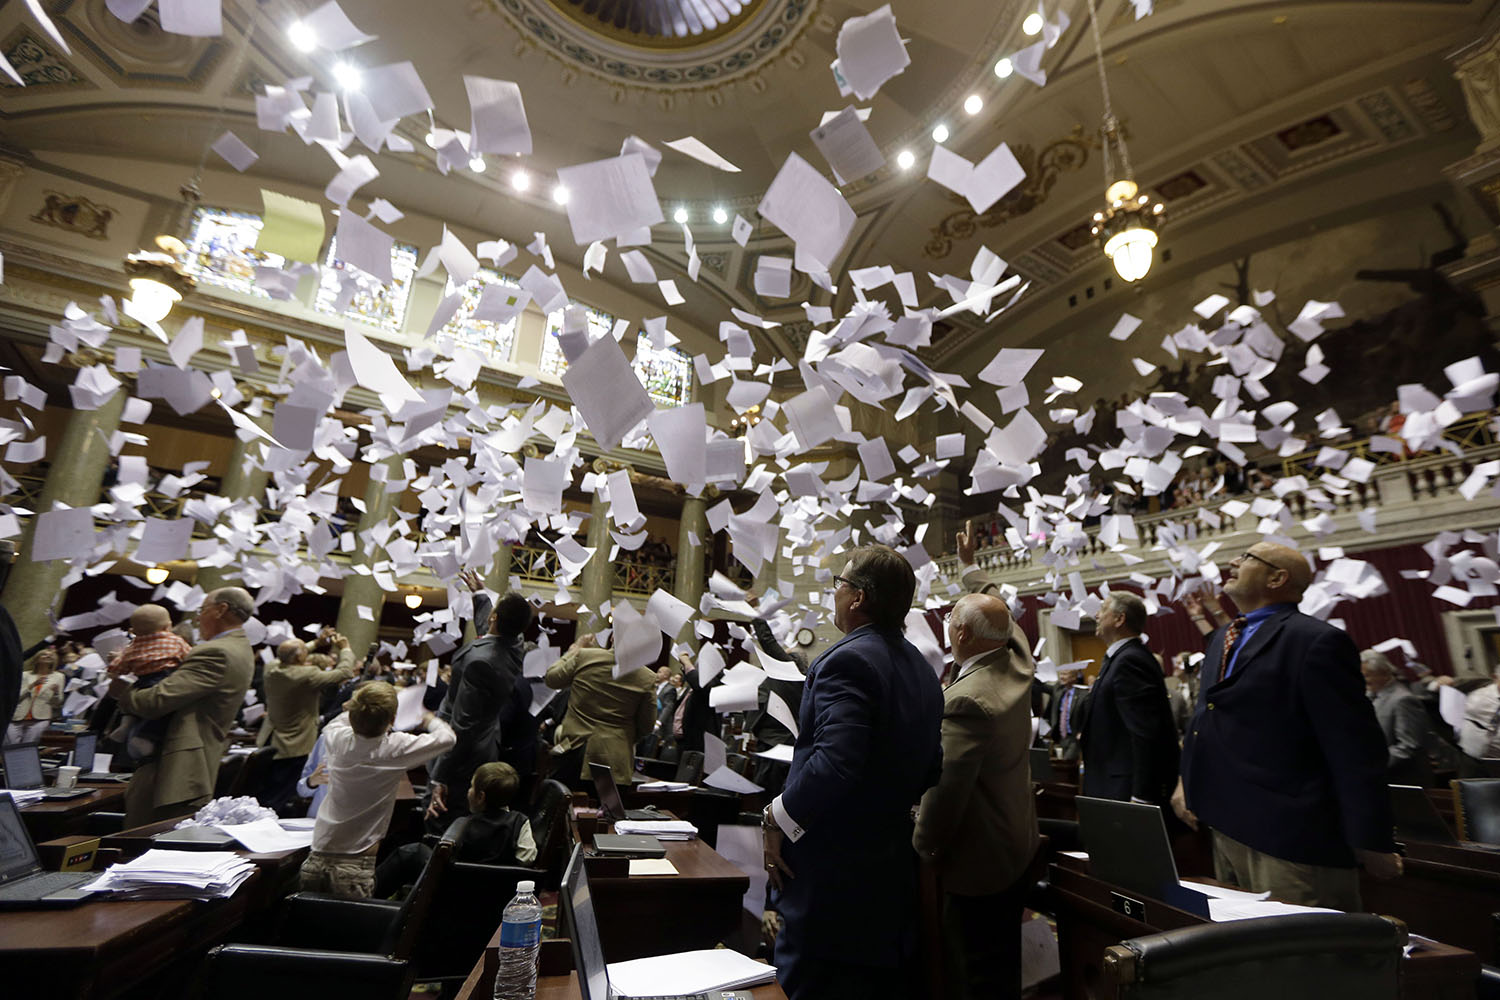 Members of the Missouri House of Representatives throw papers in the air in celebration of the end of the legislative session in Jefferson City, Mo., on May 16, 2014.